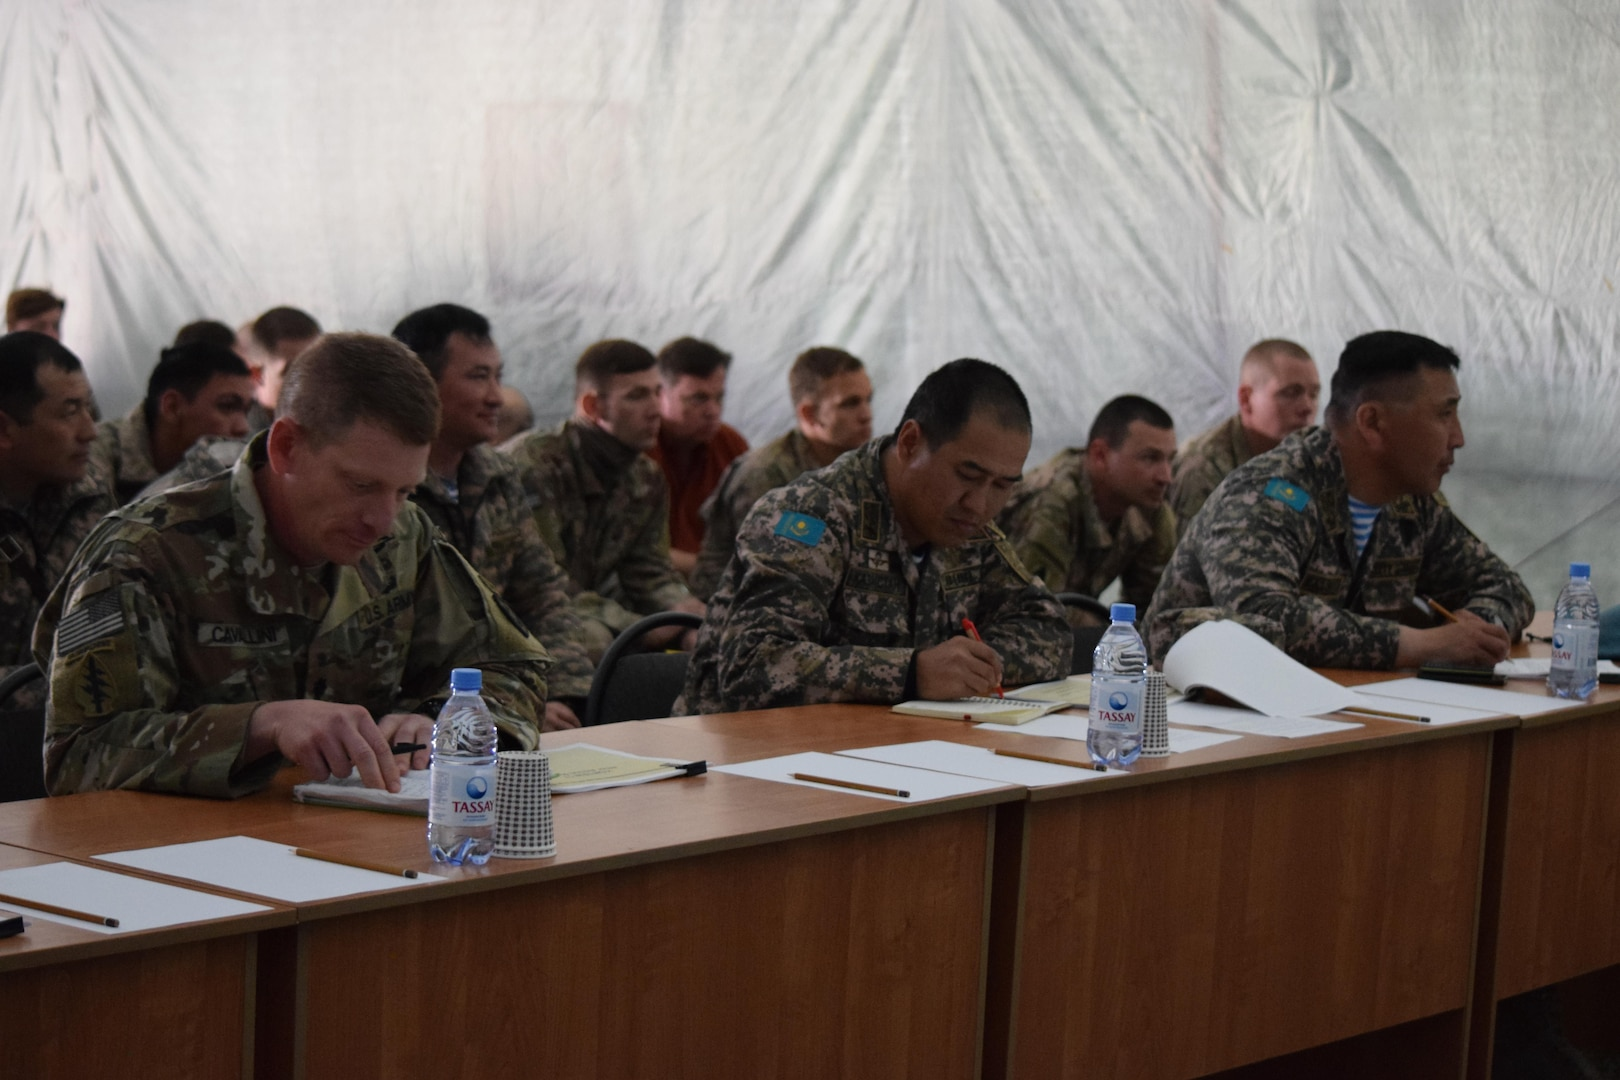 Officials from the U.S. Army, British Army and the Armed Forces of Kazakhstan listen to an after action review on the last day of Steppe Eagle Koktem Apr. 11, 2017, at Illisky Training Center, Kazakhstan.